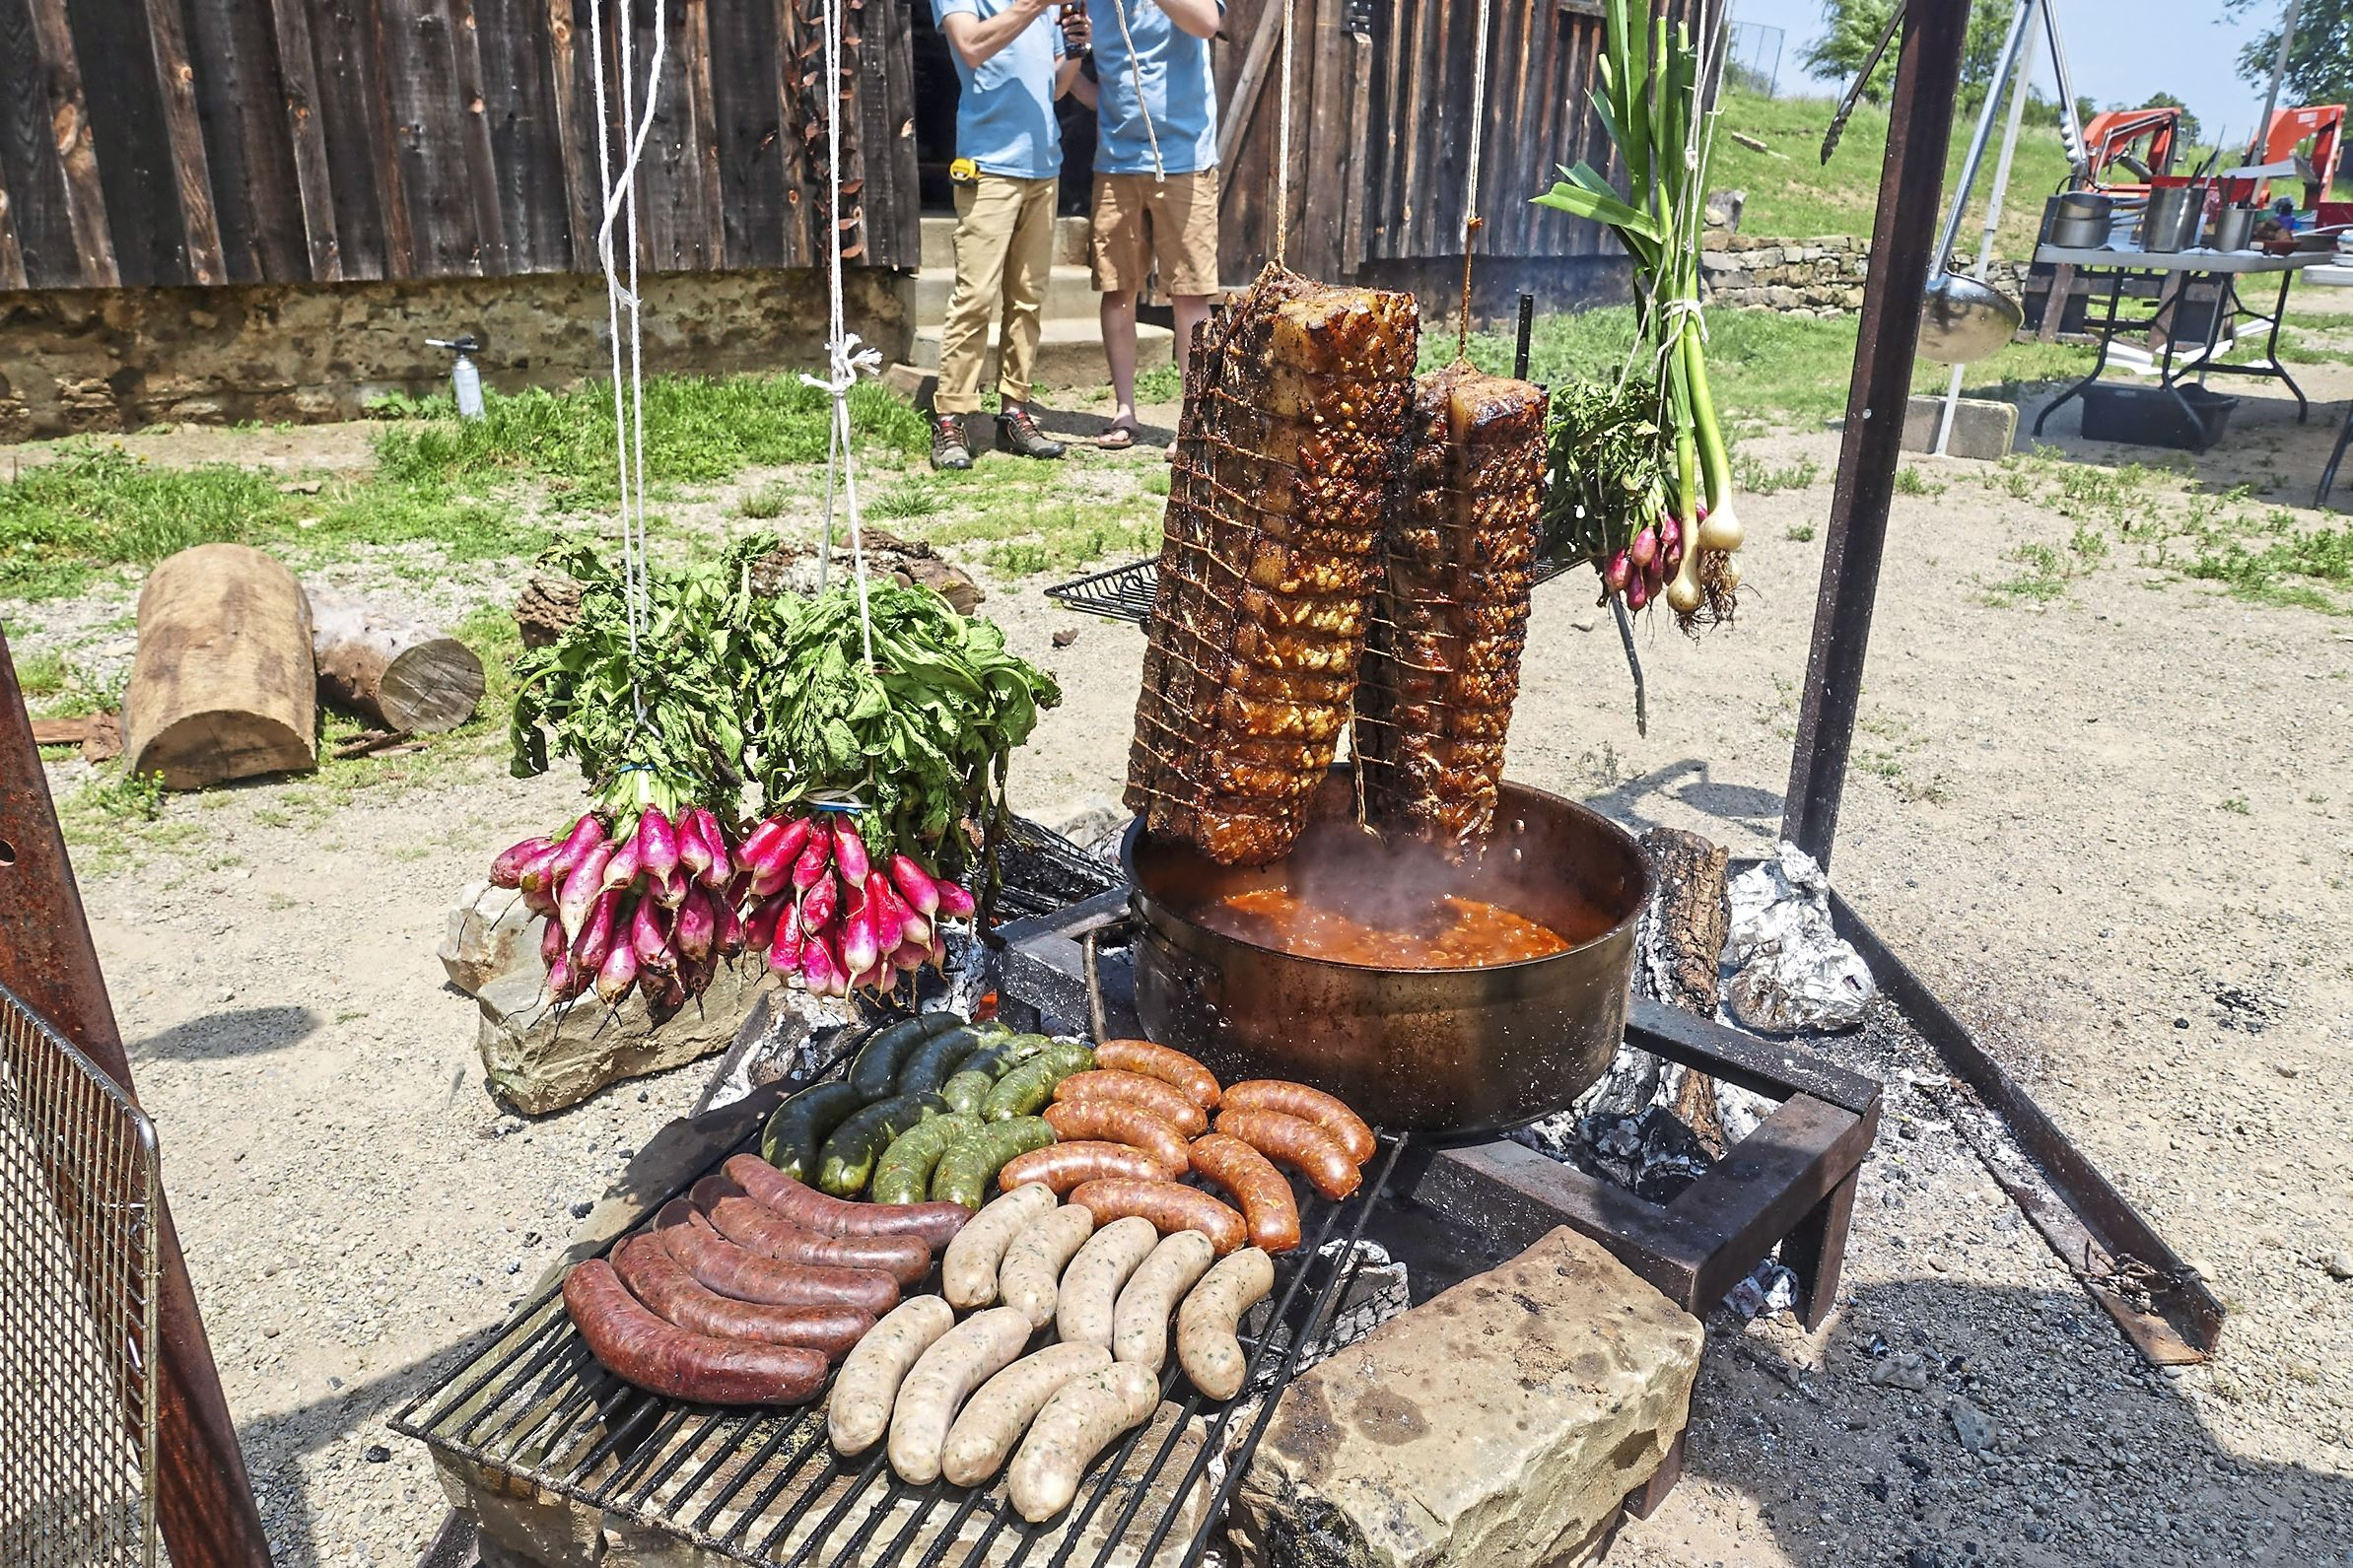 """bourdain pittsburgh white oak-4  A spread of smoked meats and vegetables is prepared for a private dinner at White Oak Farm in Hampton for a segment of Anthony Bourdain's CNN show, """"Parts Unknown."""""""